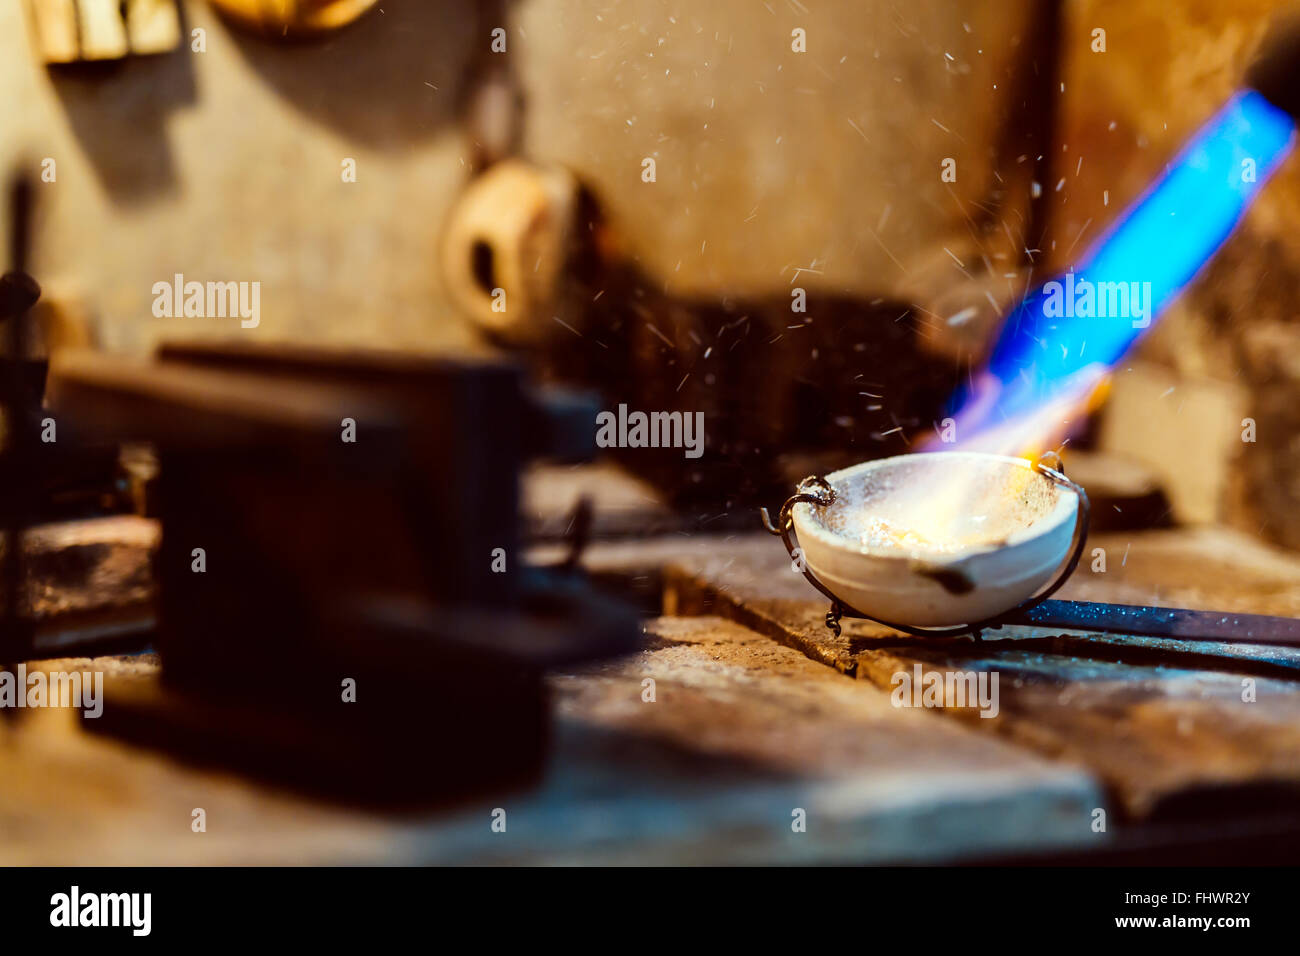 Jeweler welding gold the traditional way Stock Photo